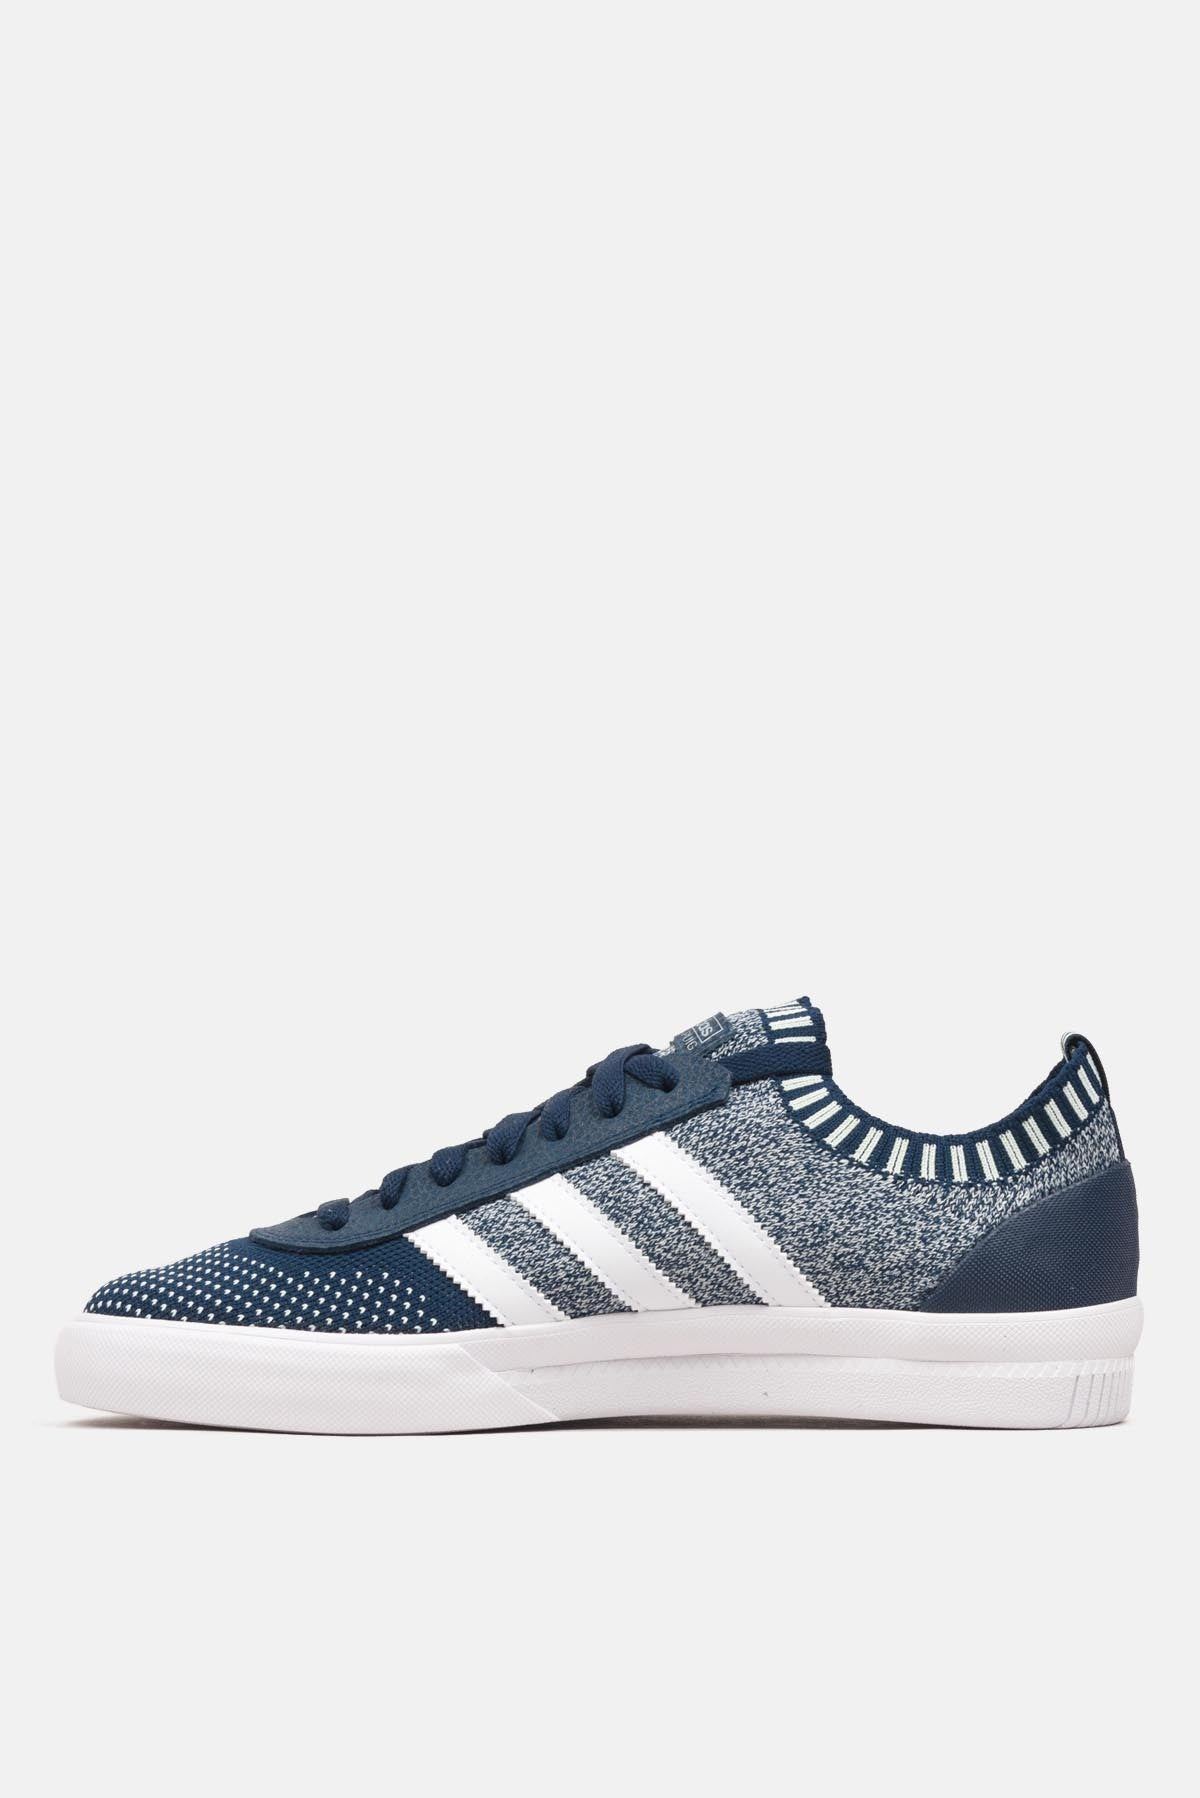 Adidas Lucas Premiere Primeknit Shoes available from Priory